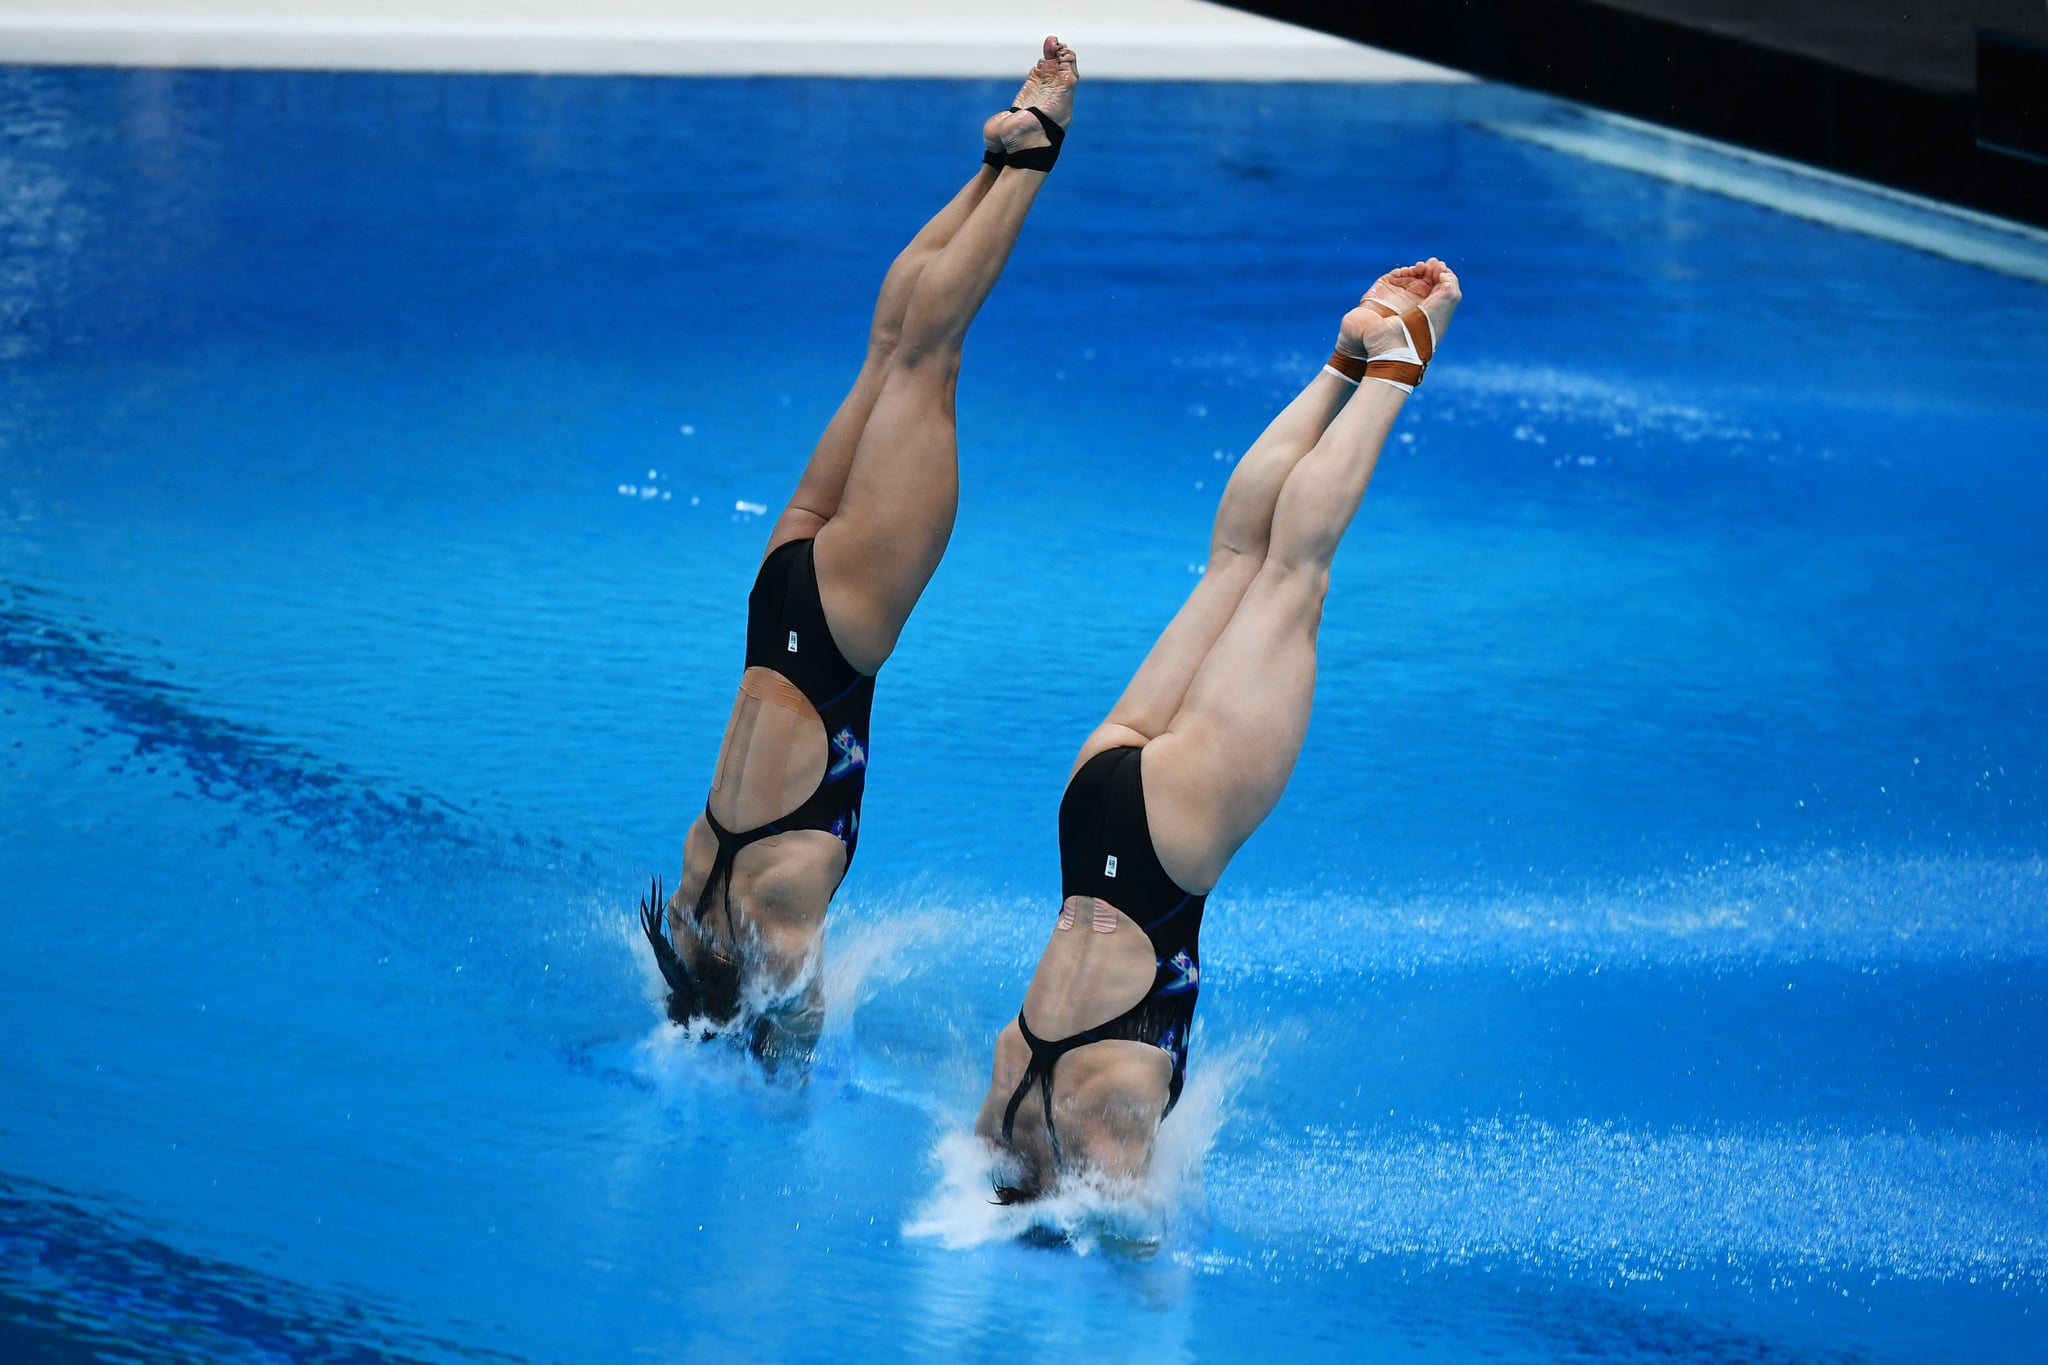 Pandelela Pamg and Mun Yee Leong of Malaysia compete in the women's synchronised 10m platform at the FINA Diving World Cup, which doubles as a test event for the 2020 Tokyo Olympics, at the Tokyo Aquatics Centre on May 2, 2021. (Photo by Charly TRIBALLEAU / AFP) (Photo by CHARLY TRIBALLEAU/AFP via Getty Images)